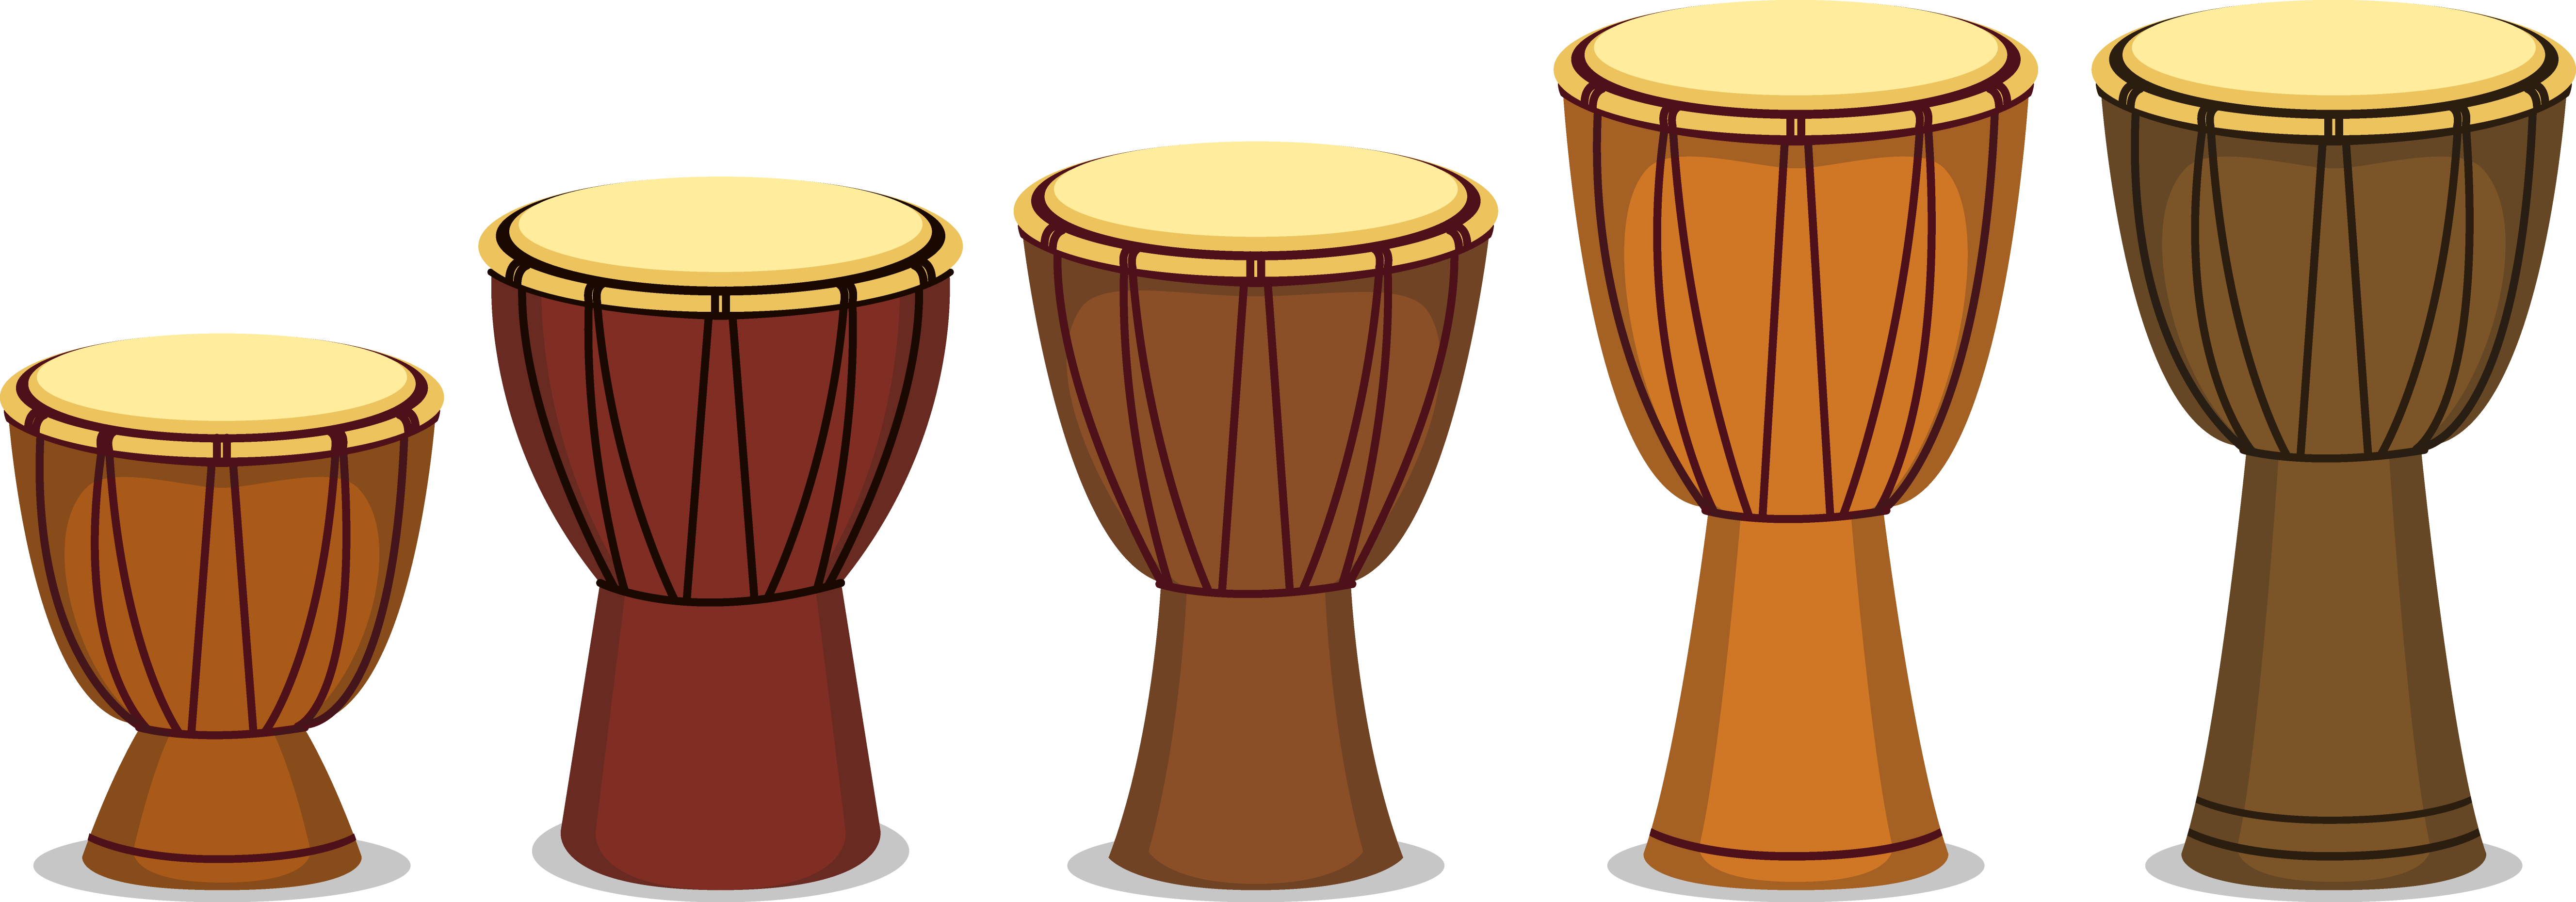 Drums clipart djembe, Picture #969068 drums clipart djembe.